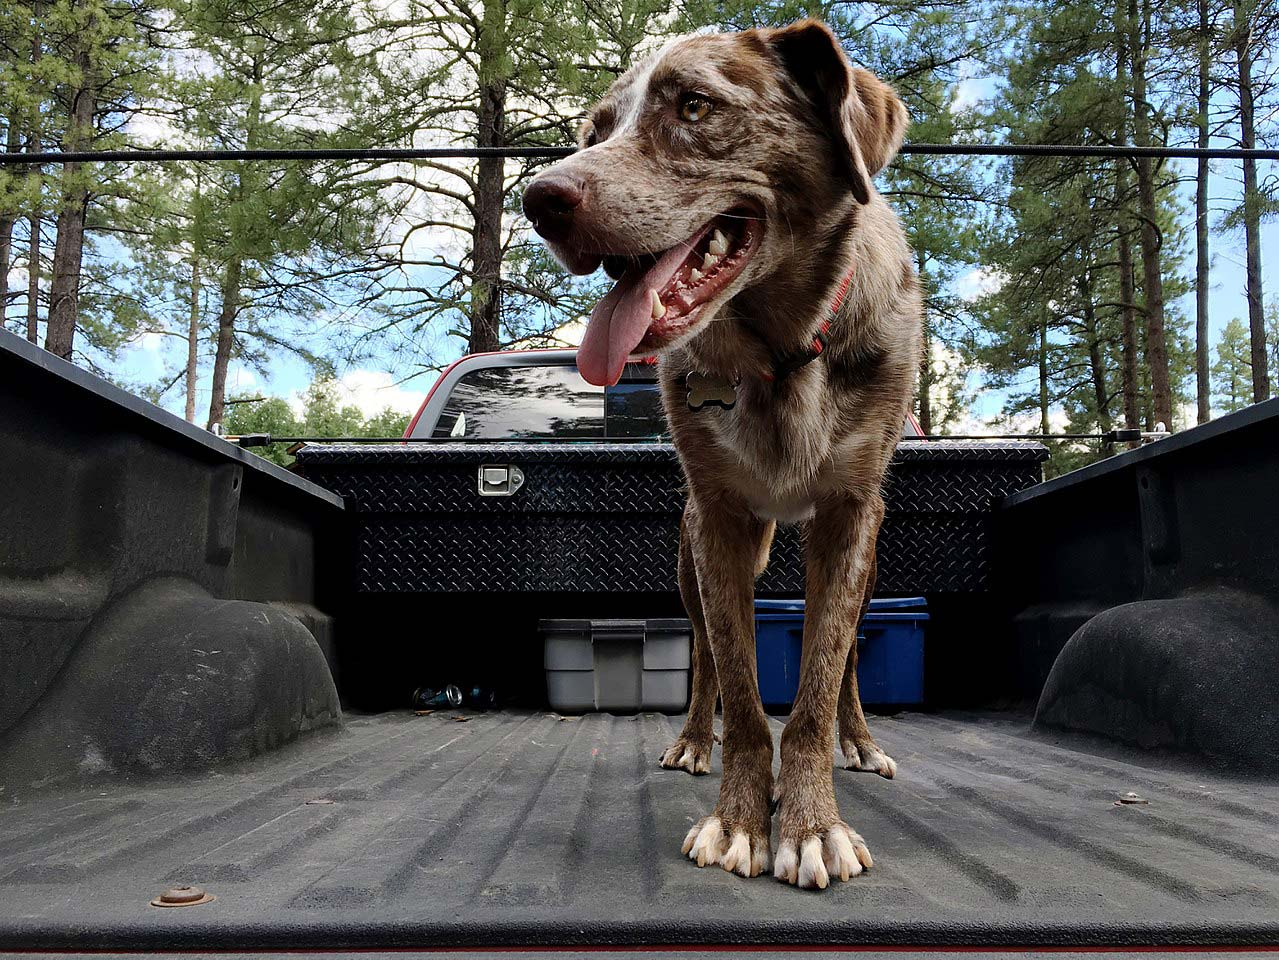 A dog all ready for a spot of truck bed camping